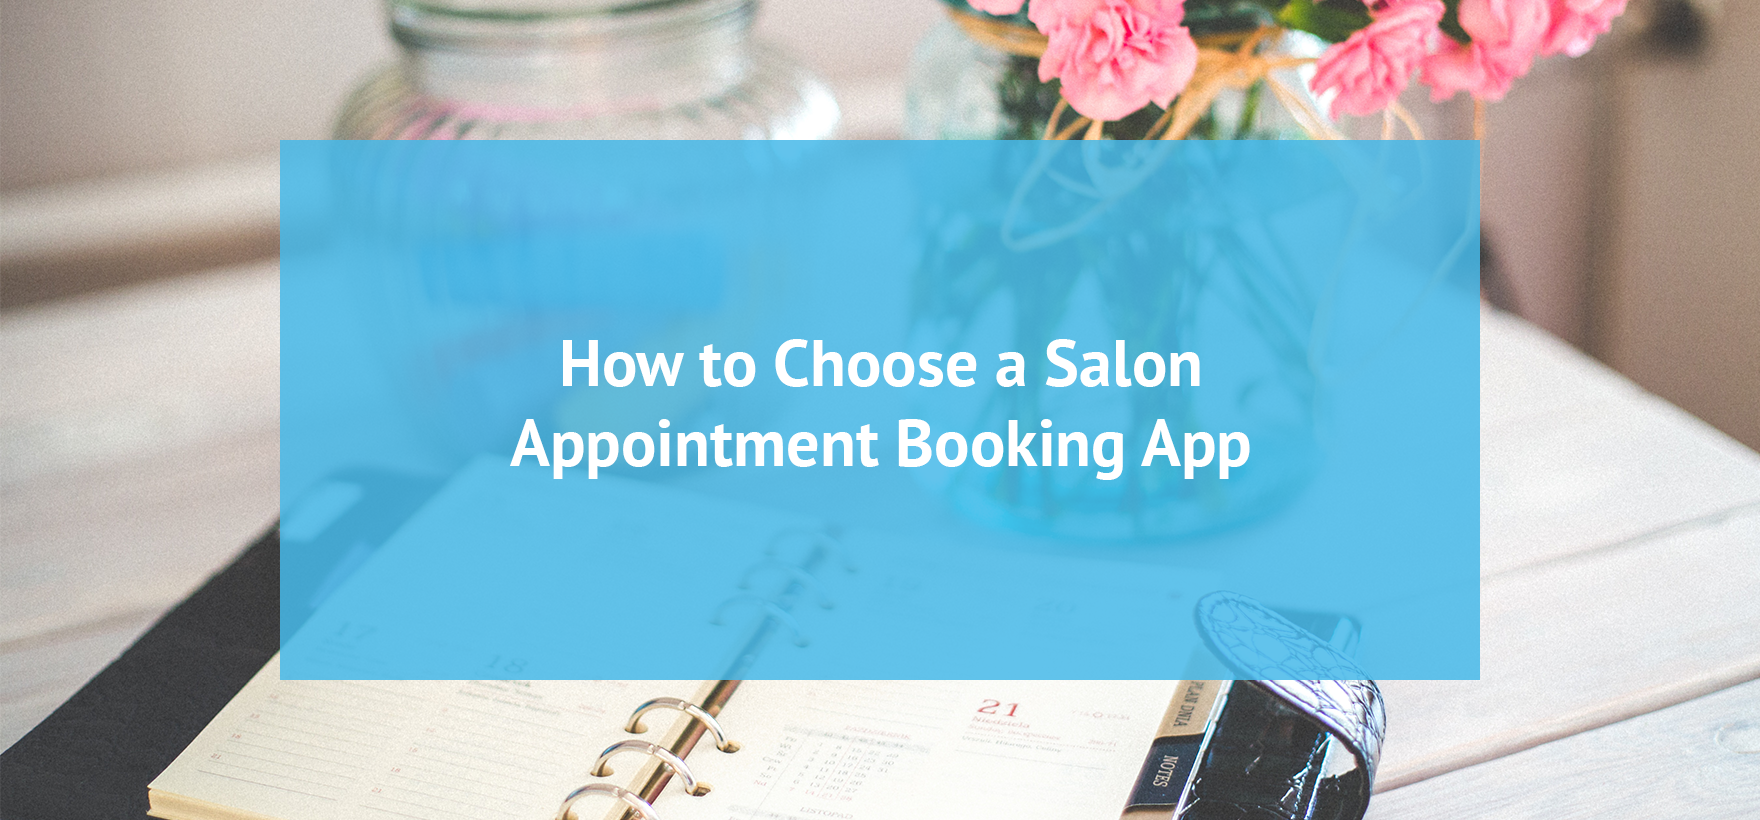 How to Choose a Salon Booking App